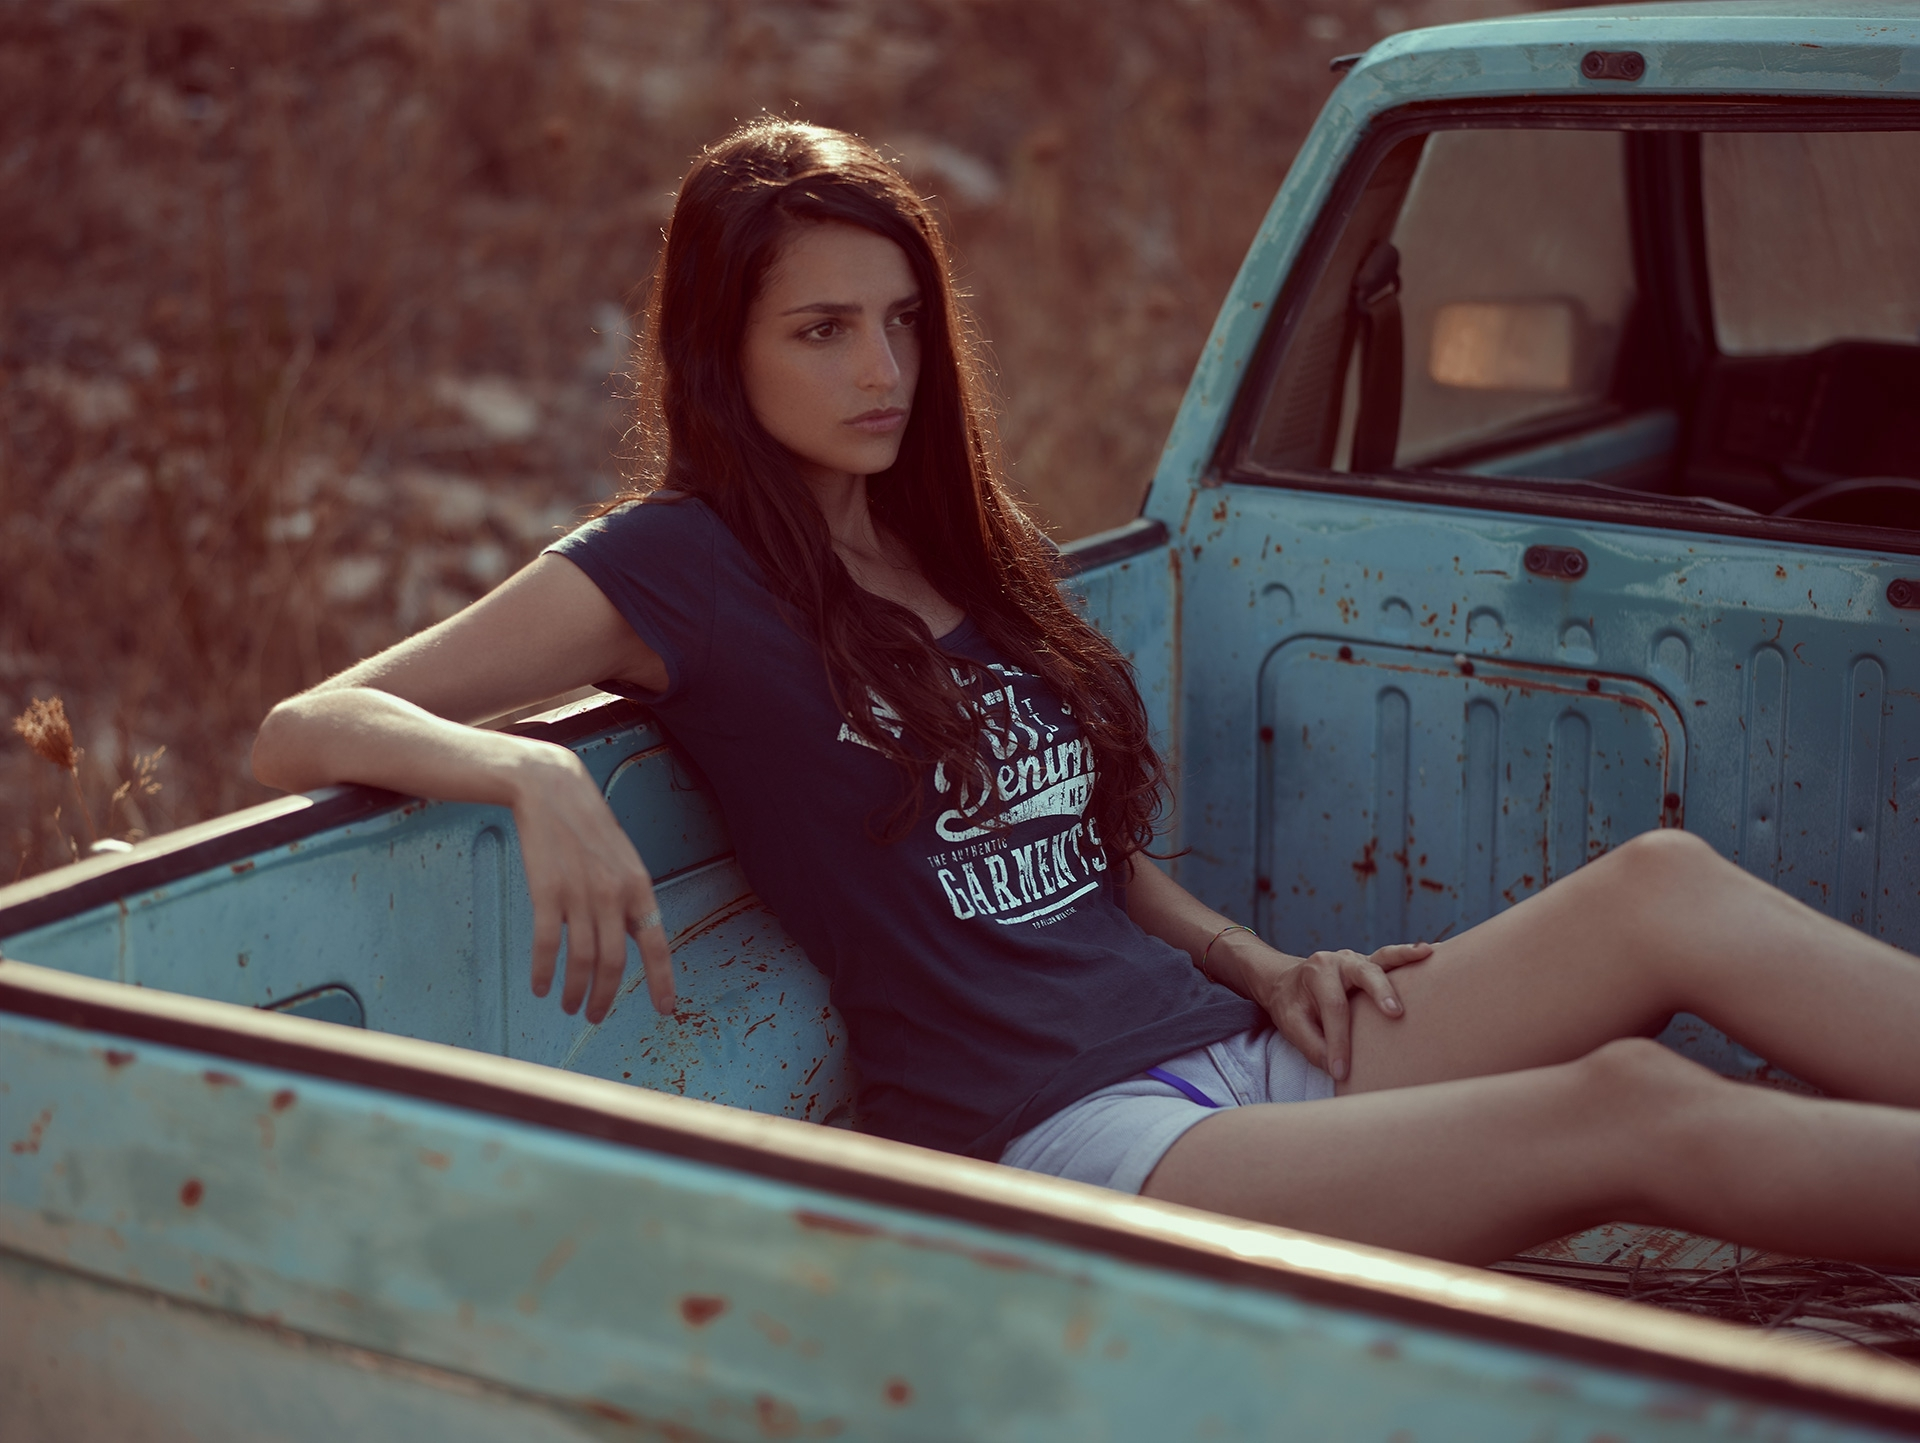 crete greece frederic mercier photographer edito lifestyle us american dream jean fashion one color